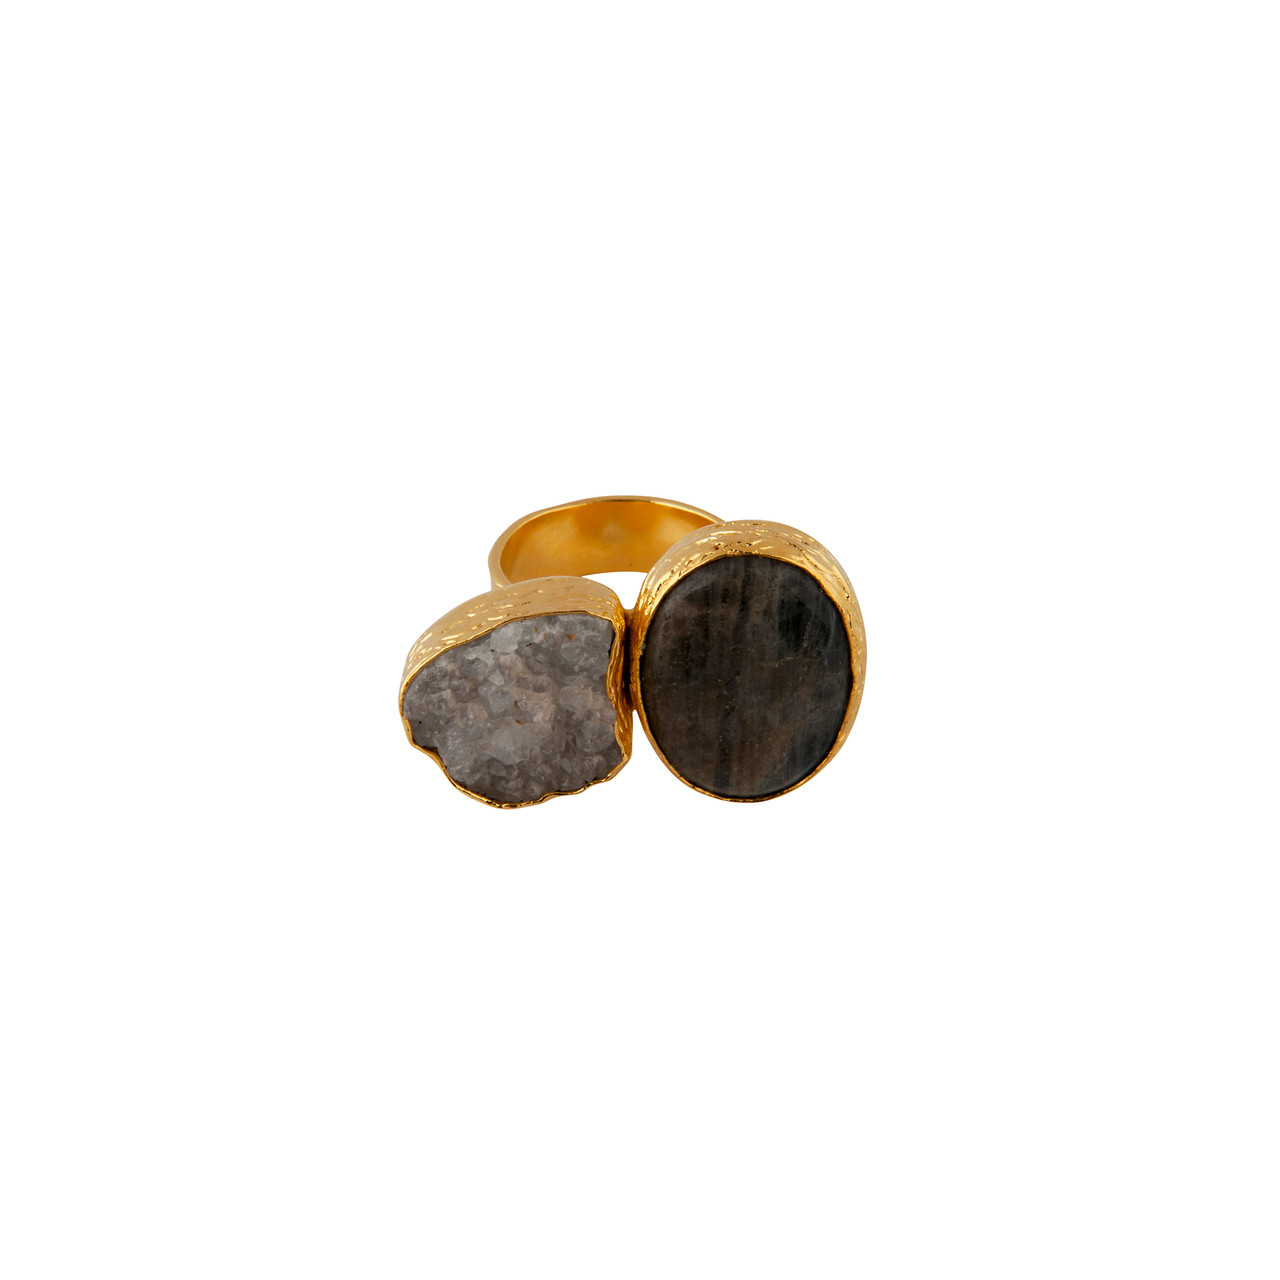 b89297a98f7c5 Bold Double Stone Ring with Druzy Quartz and Labradorite